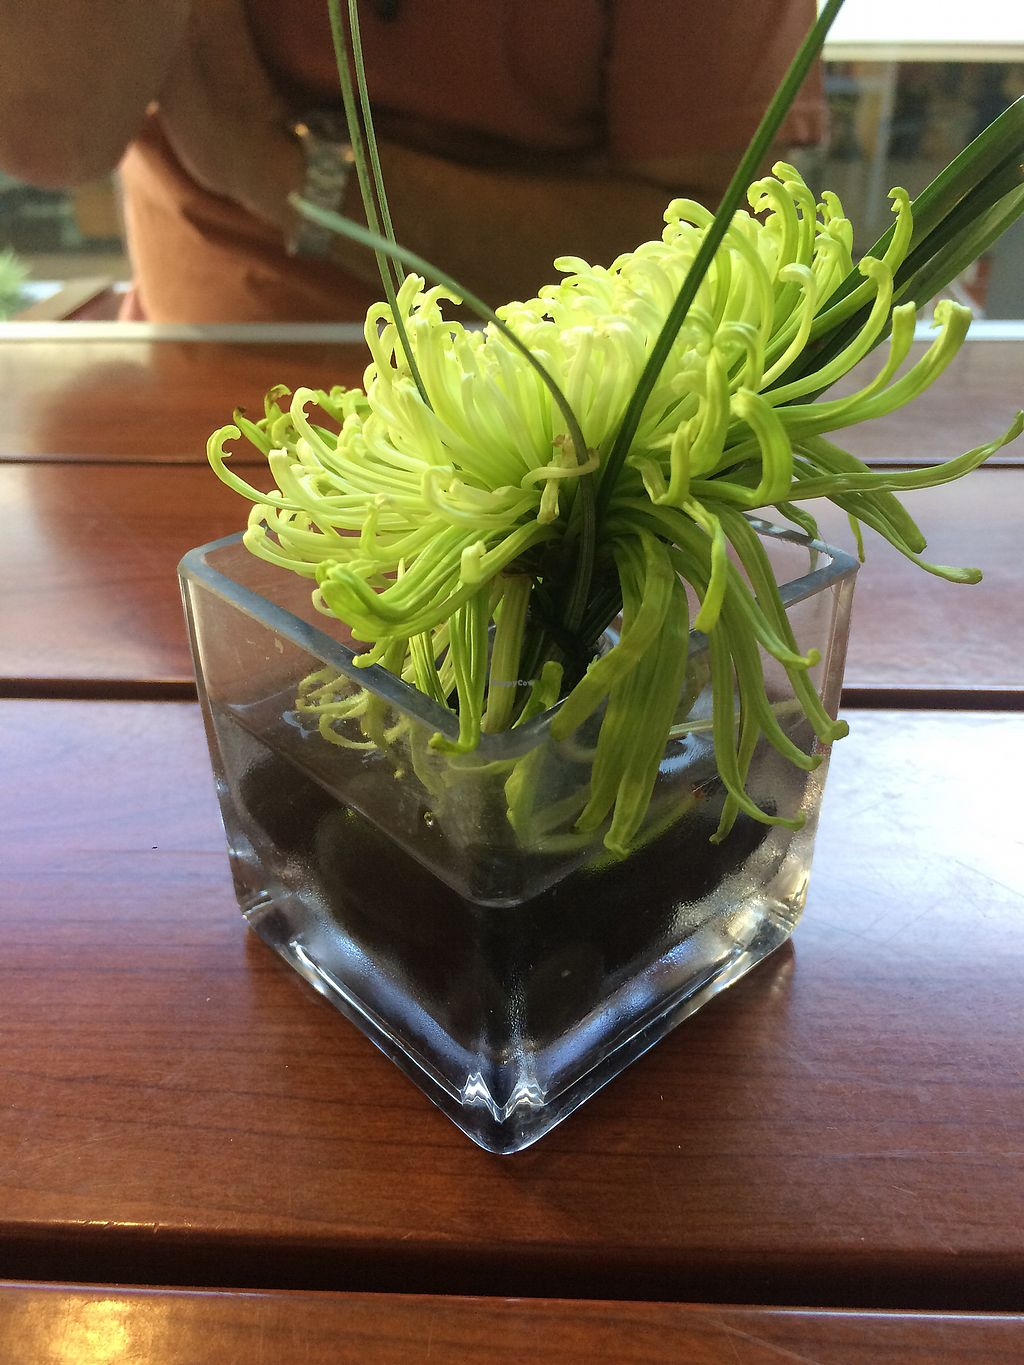 """Photo of Lean and Green Cafe  by <a href=""""/members/profile/SteffanyPel"""">SteffanyPel</a> <br/>Table decor <br/> November 4, 2017  - <a href='/contact/abuse/image/27351/321738'>Report</a>"""